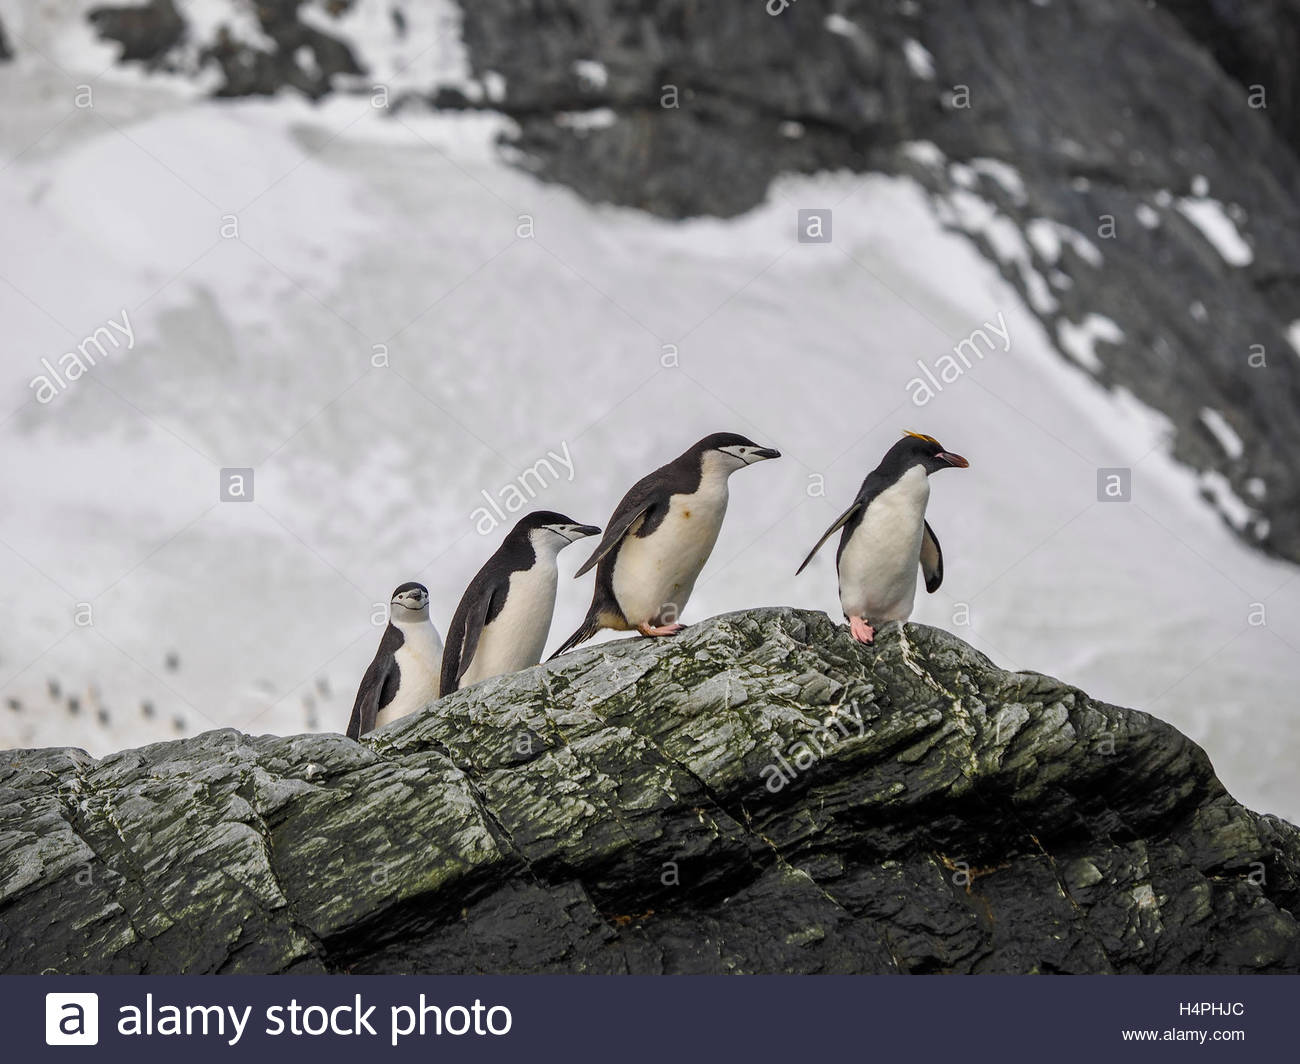 A trio of chinstrap penguins and single macaroni penguin on a rock outcrop. - Stock Image